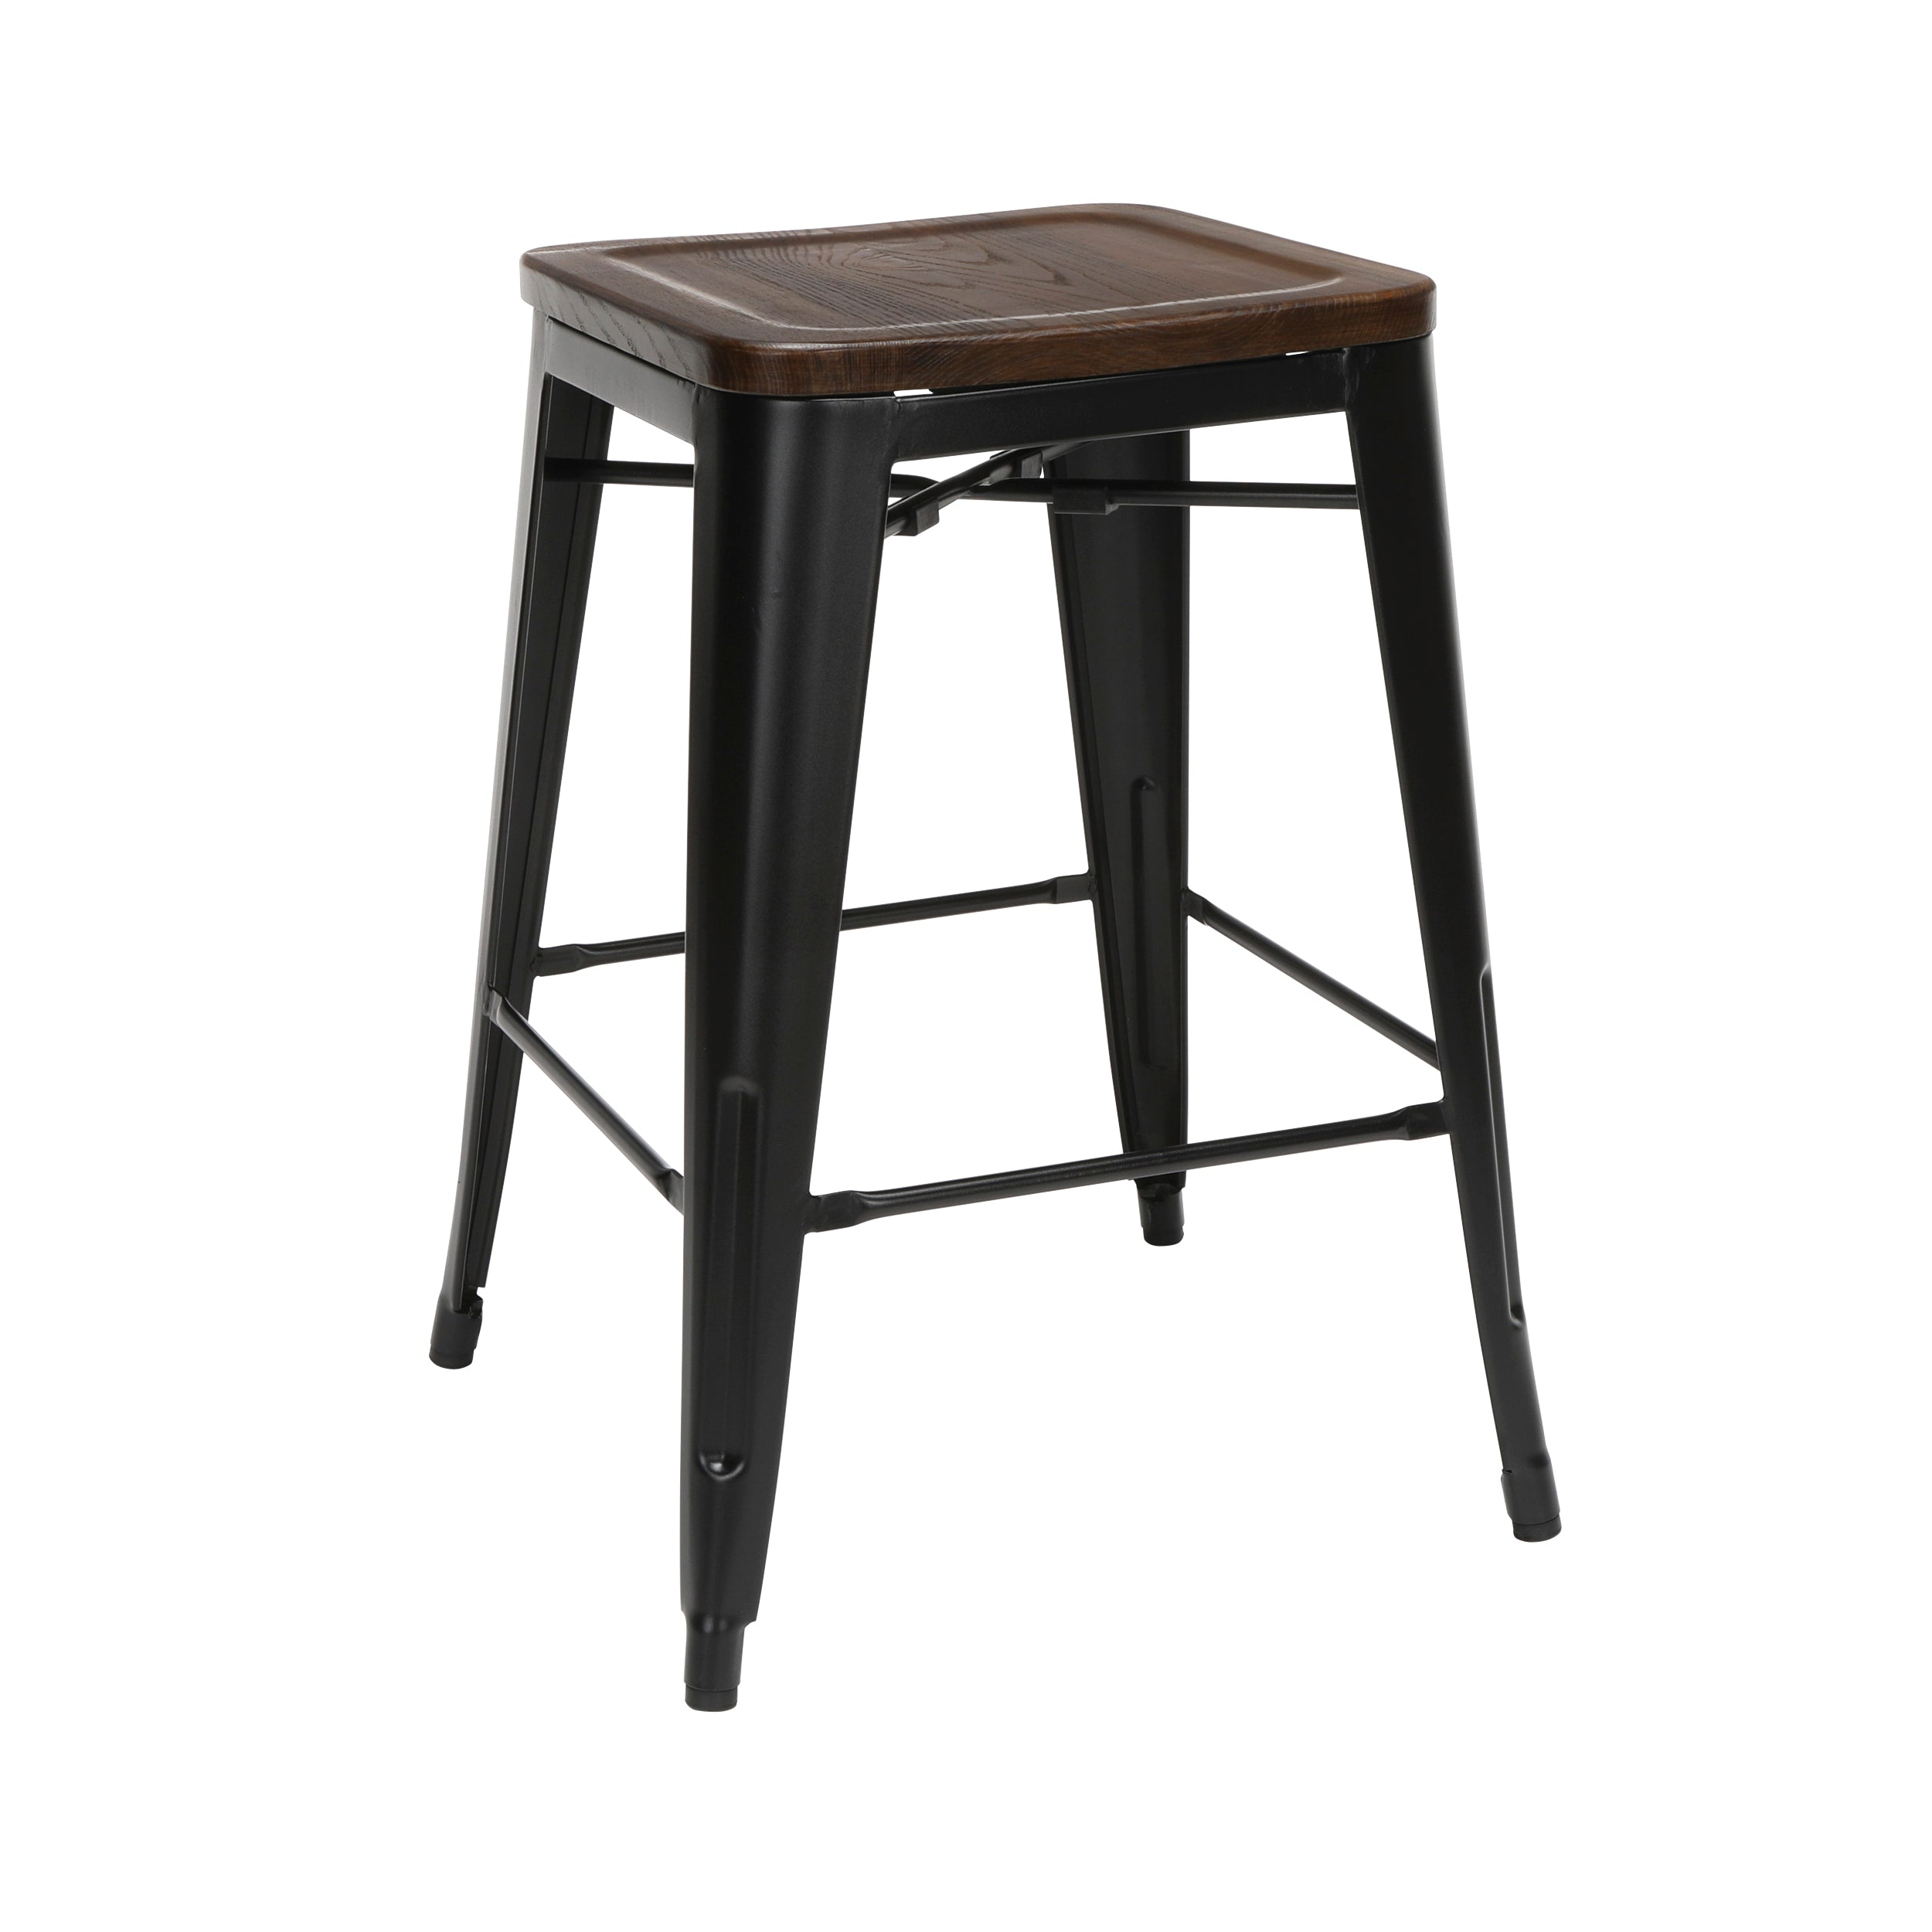 "26"" Backless Metal Stools with Wood Seats Galvanized Steel Bar Stool"